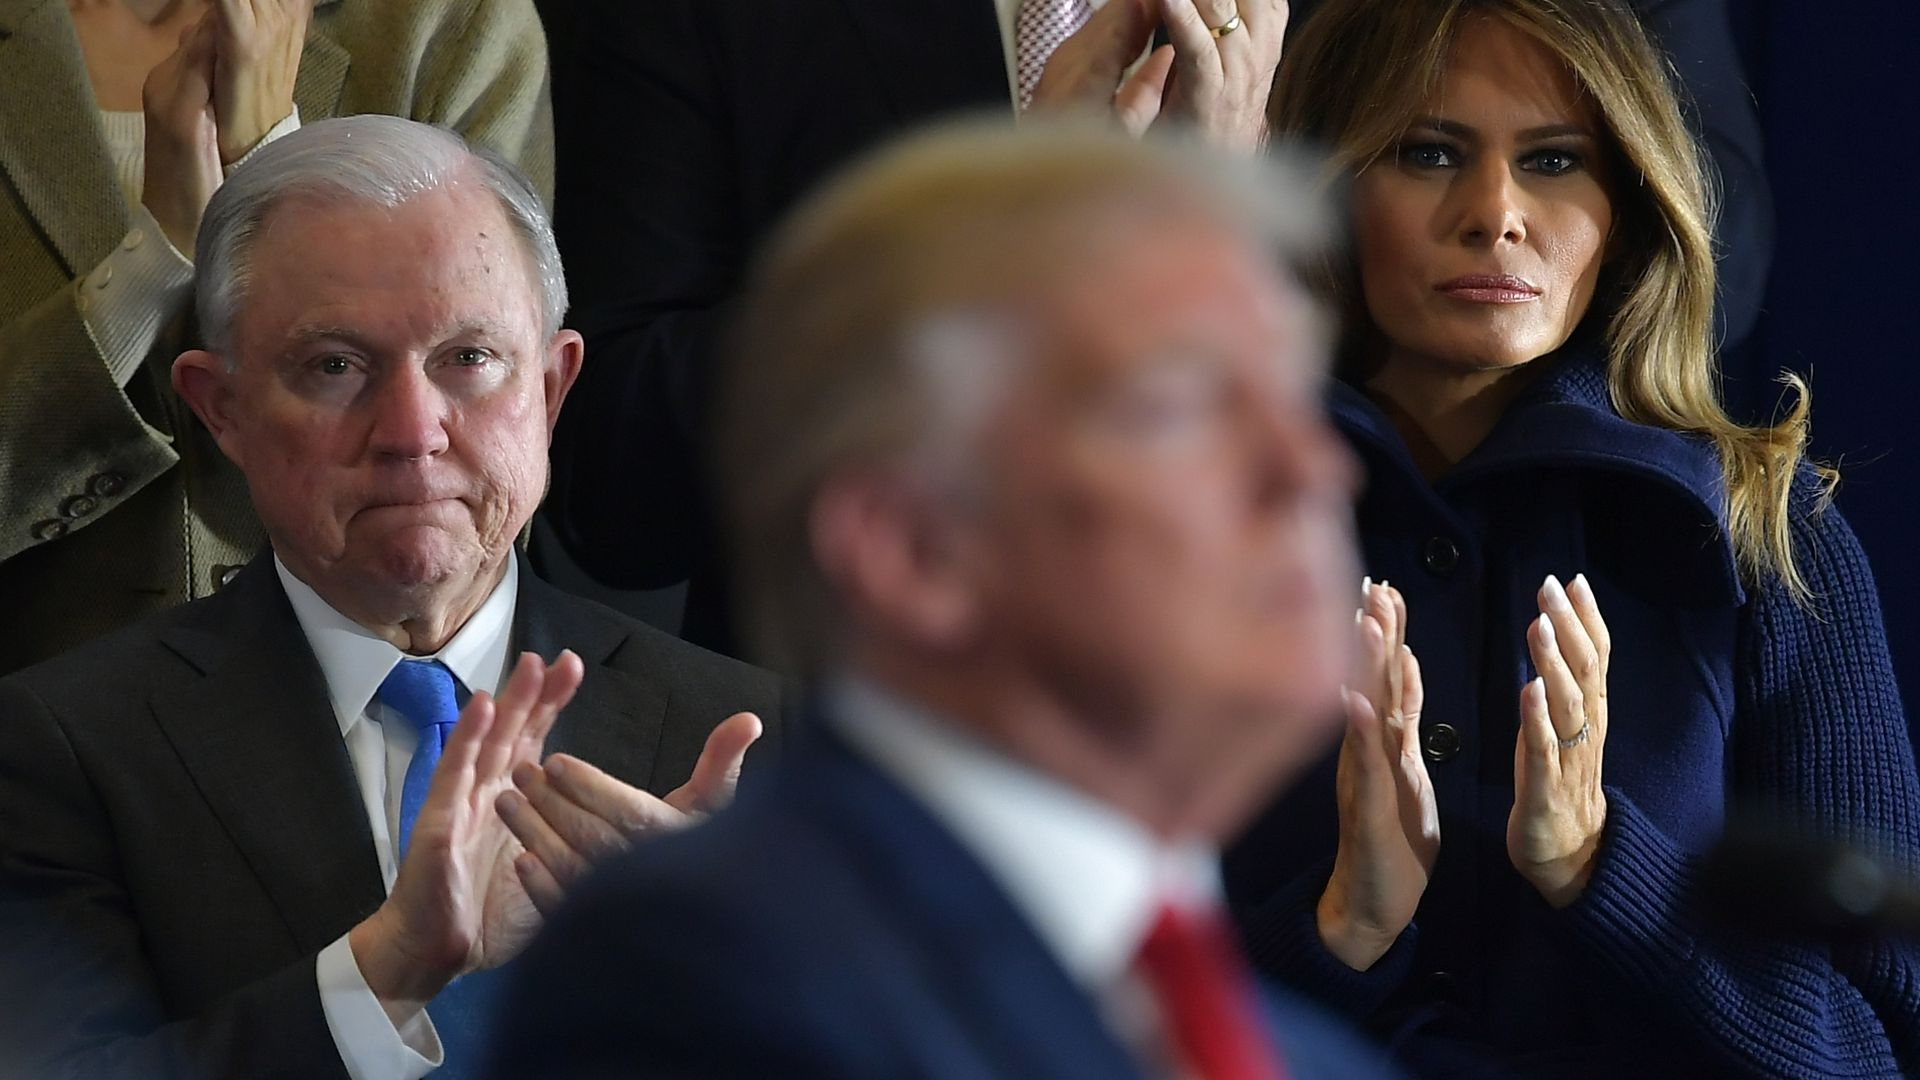 Jeff Sessions claps behind Donald Trump's blurry profile at a speech